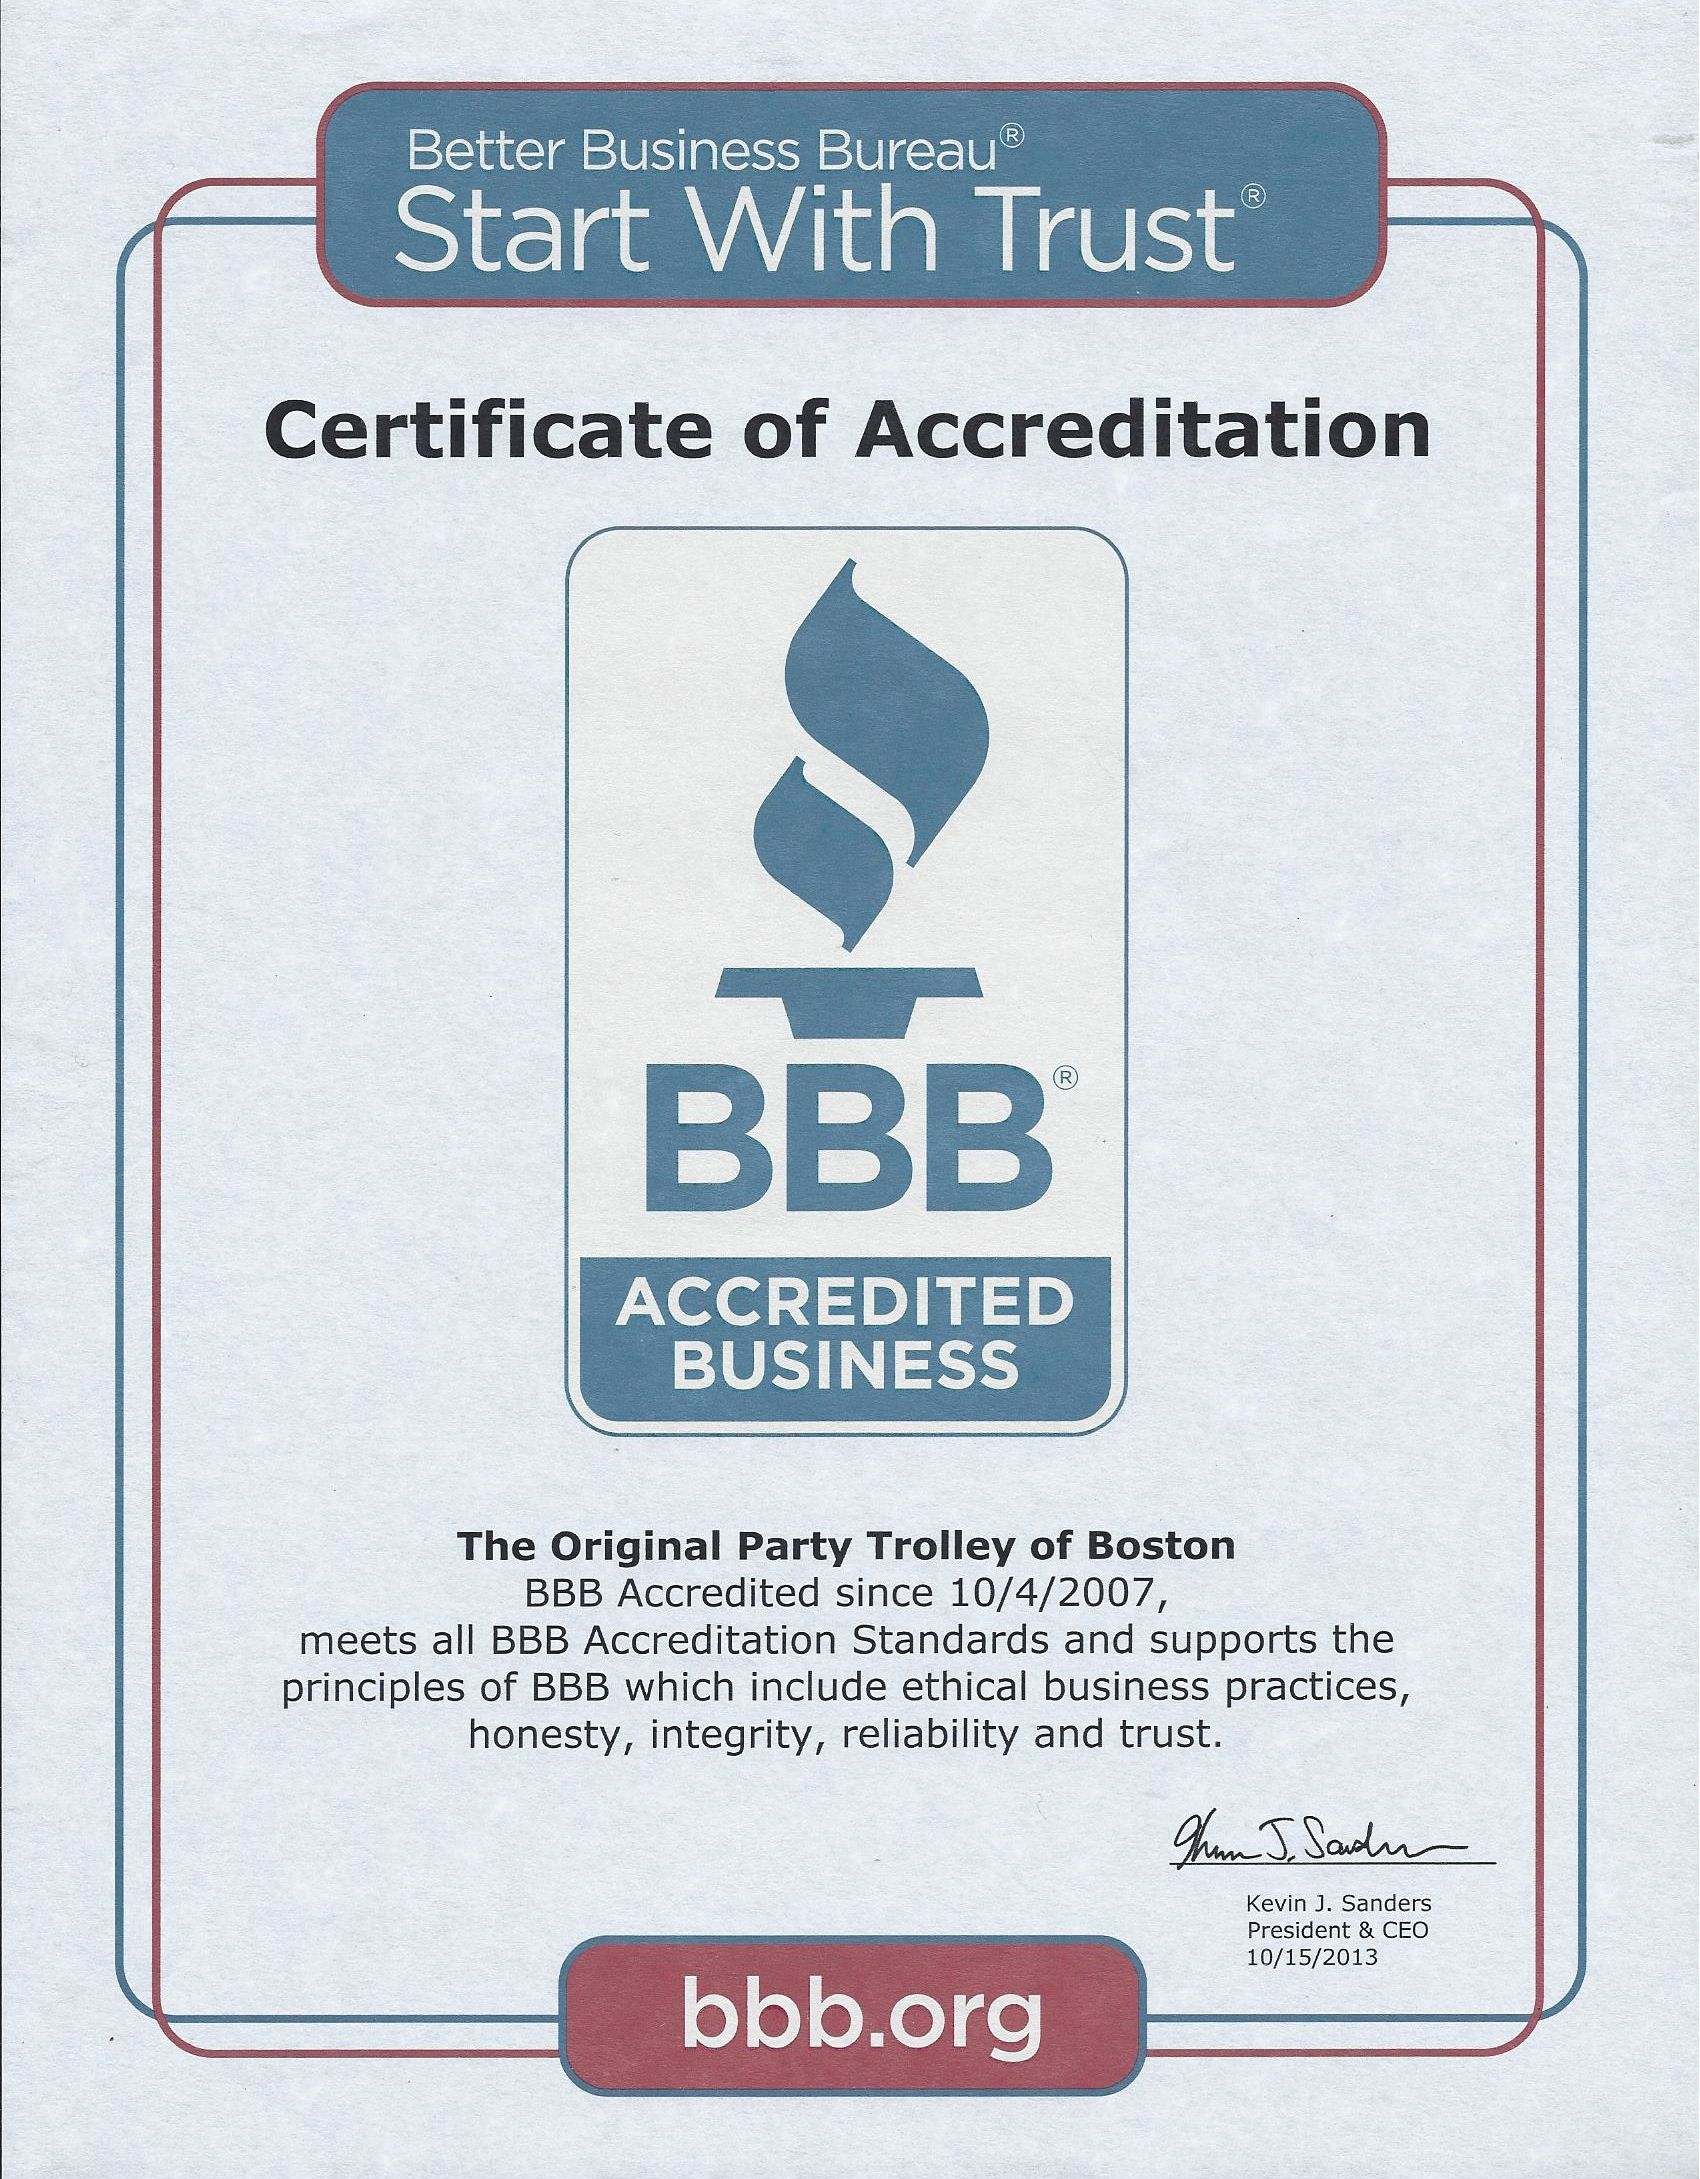 Bbb Accredited Since 10 4 07 Are You Happy Certificate Of Achievement Customer Complaints